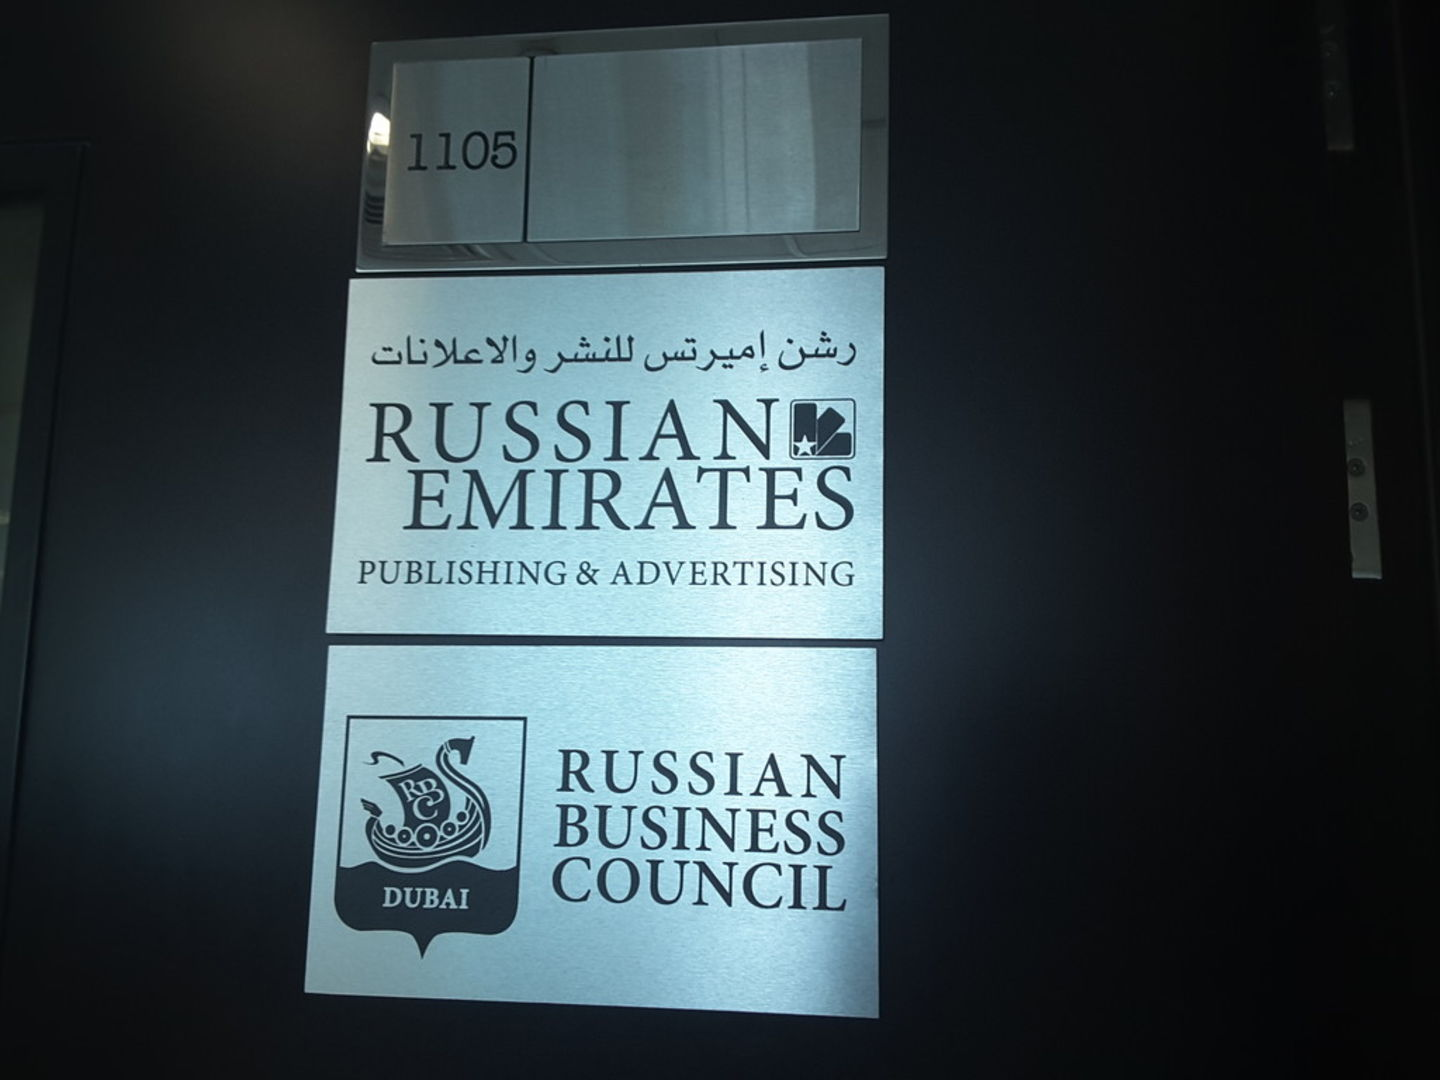 HiDubai-business-russian-emirates-publishing-advertising-media-marketing-it-media-publishing-business-bay-dubai-2